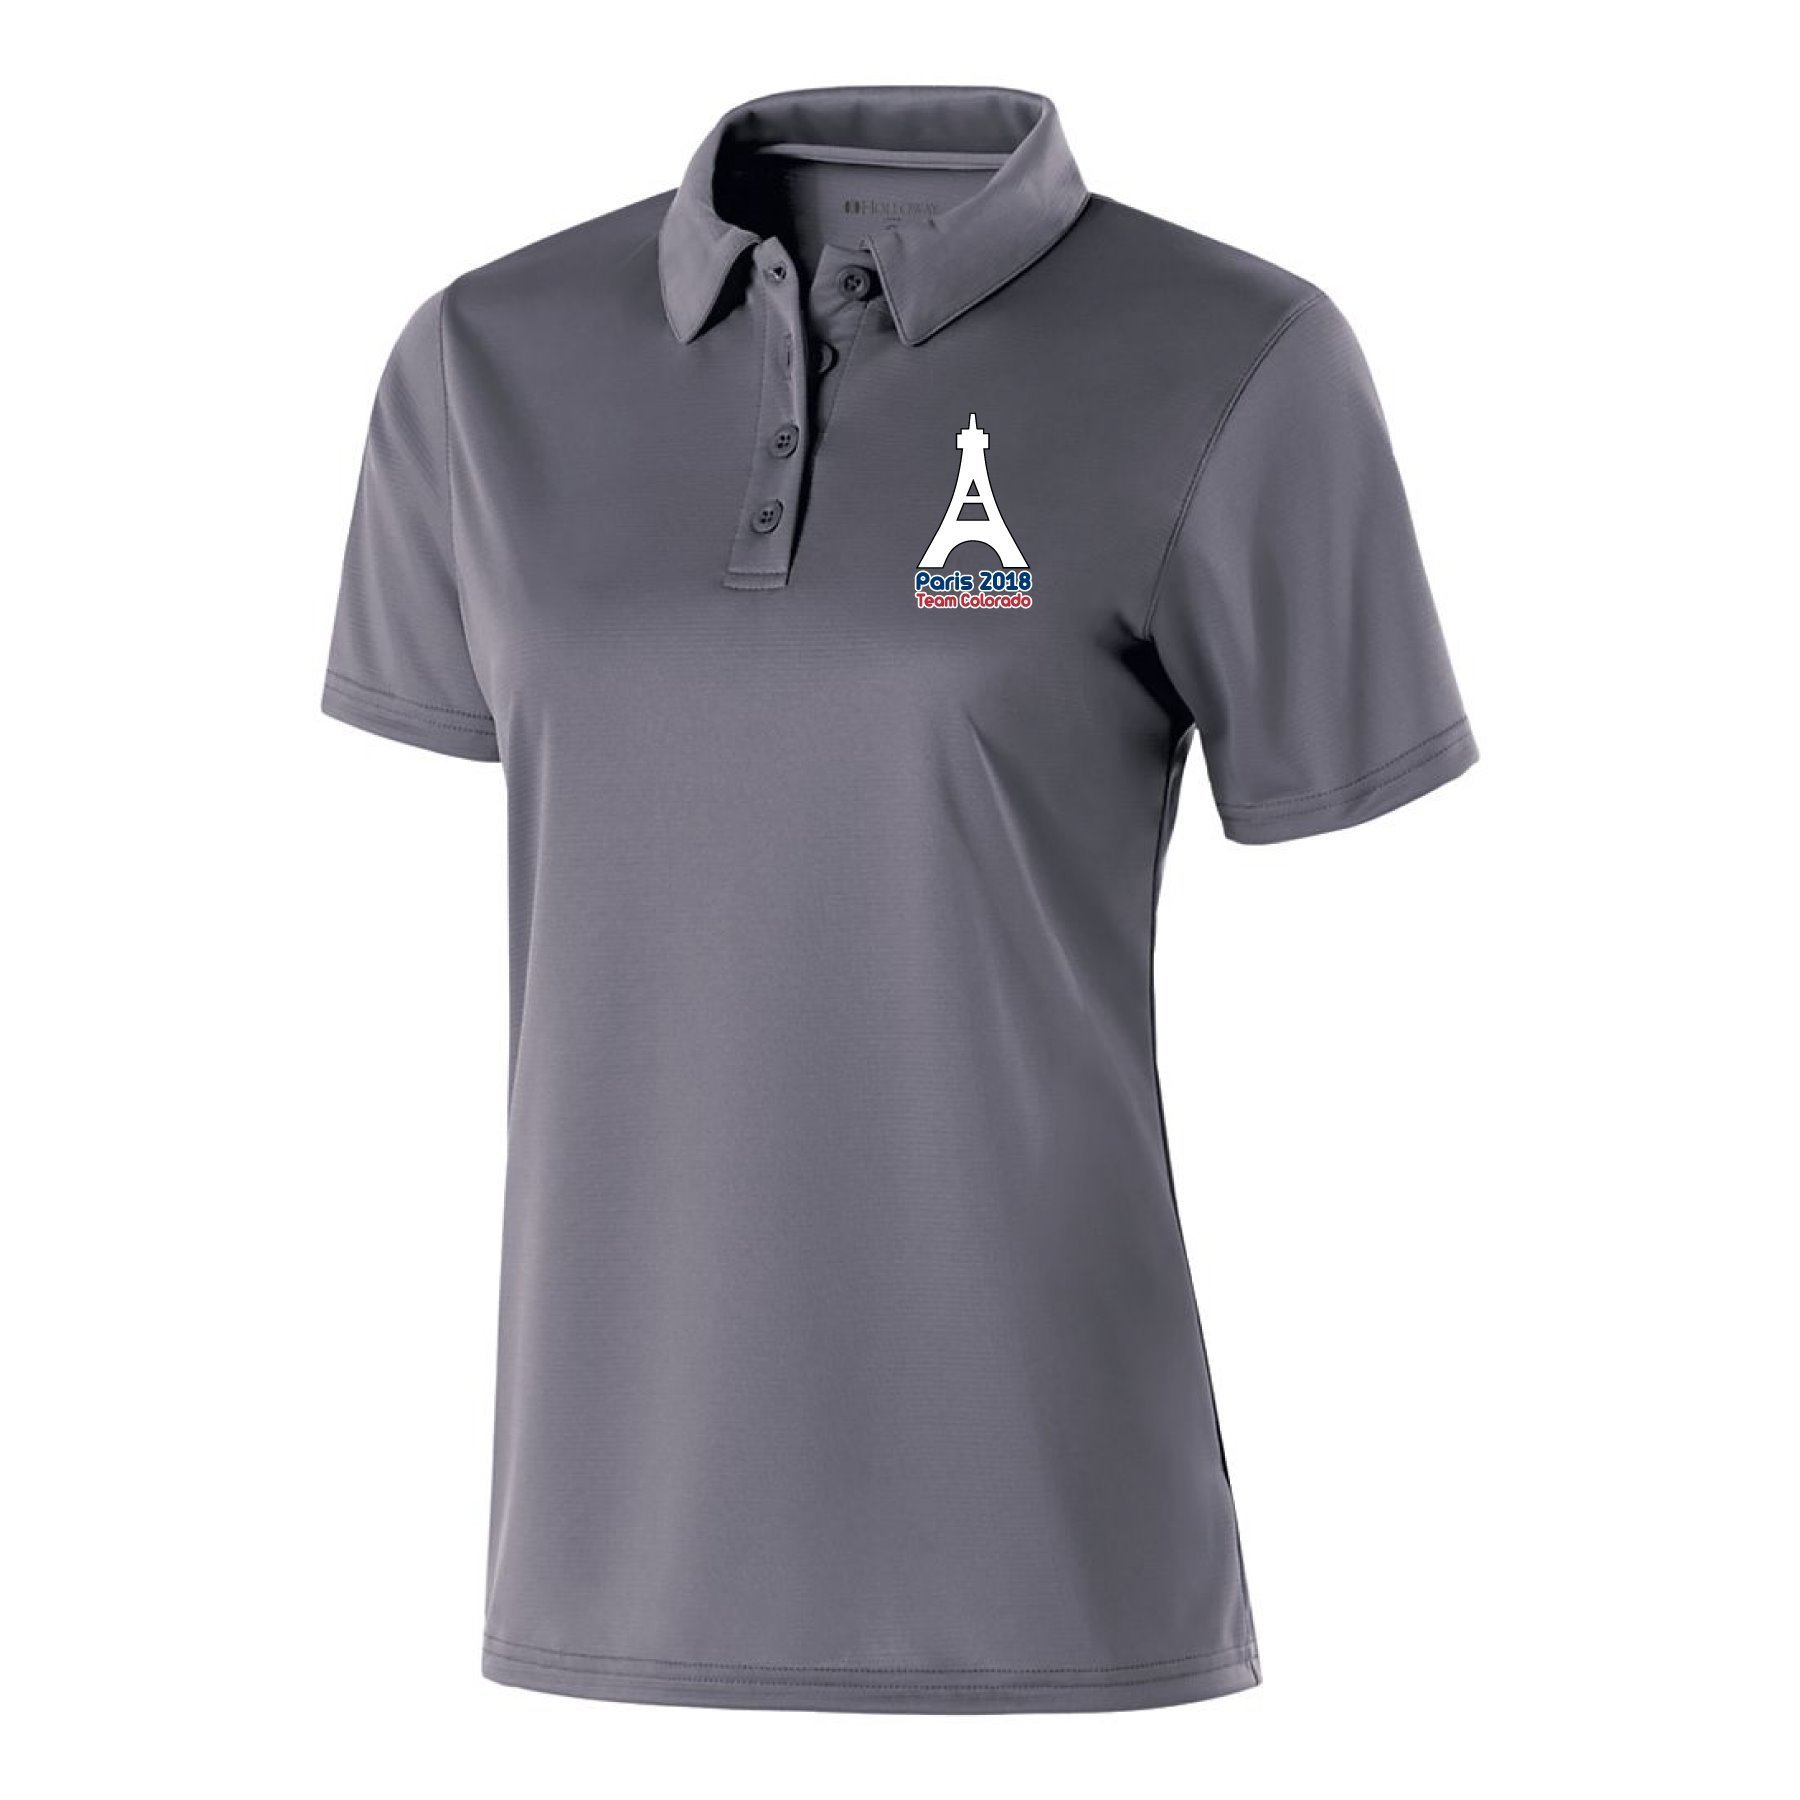 Team CO Paris 2018 Polo - Women's, Regular Order 00005